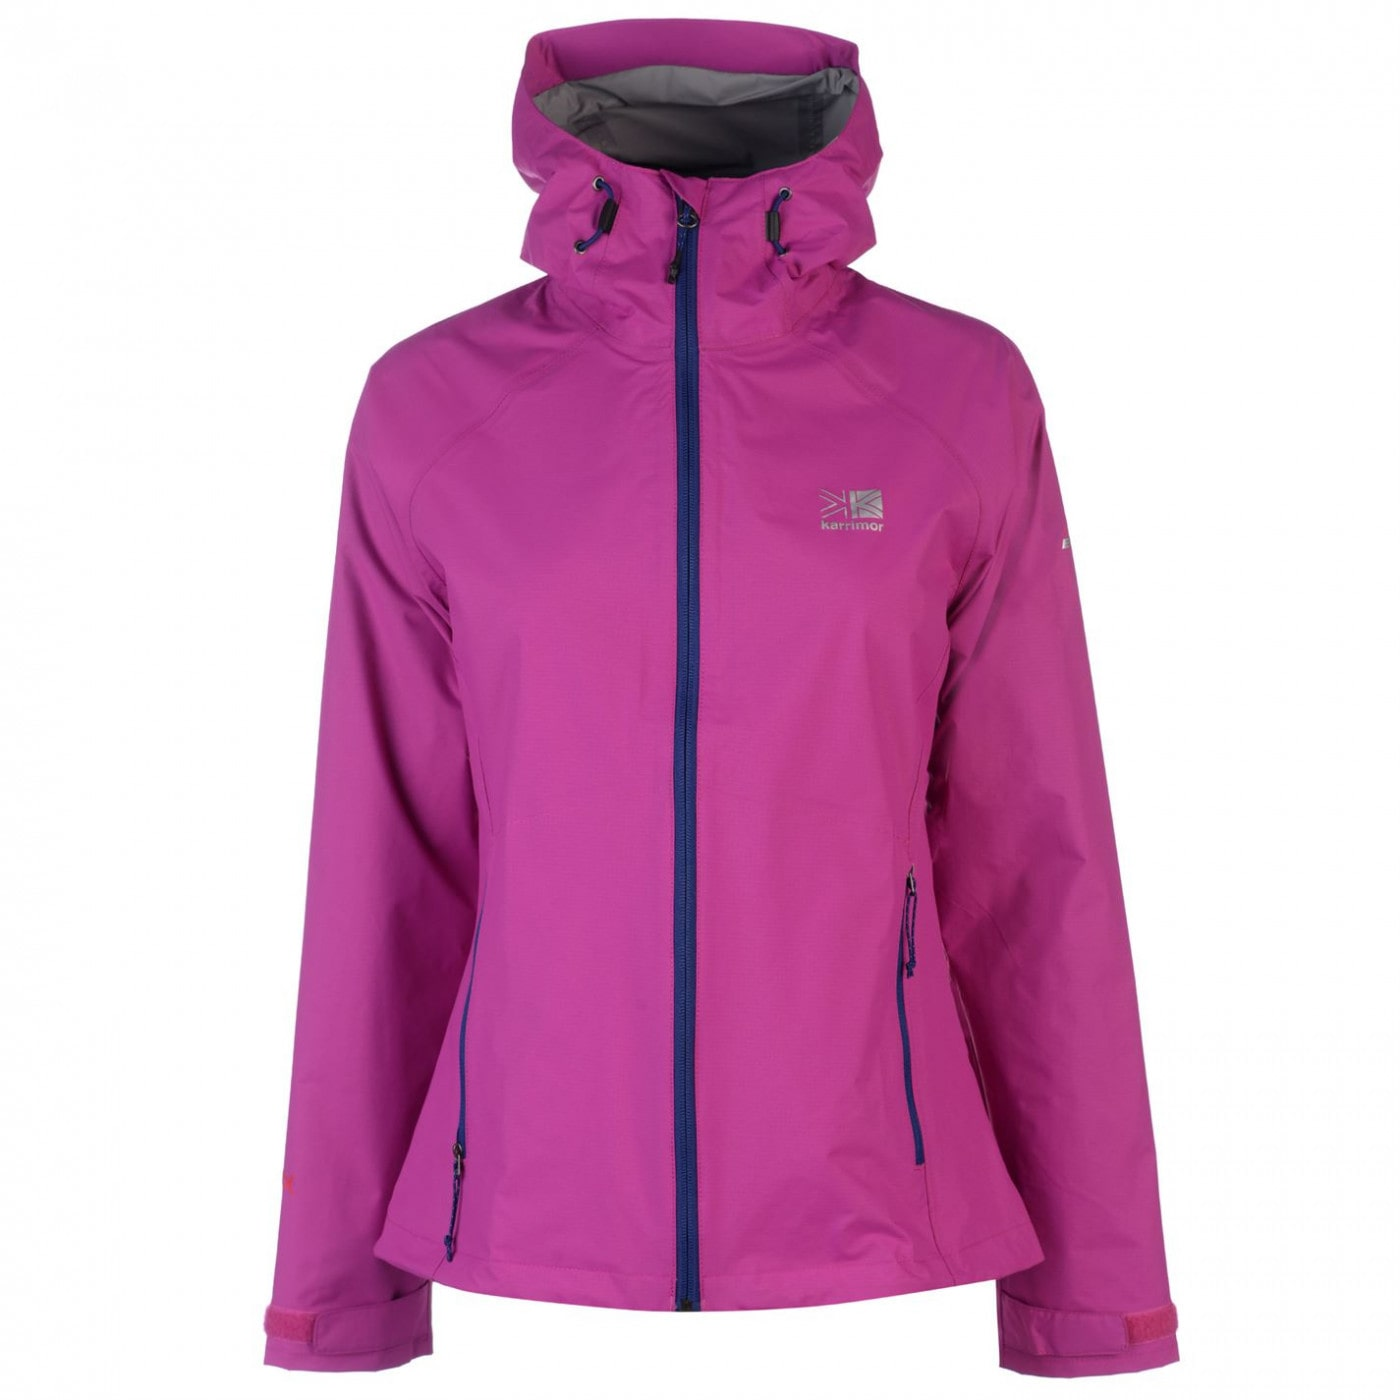 Karrimor Helium 2.5 Lightweight Jacket Ladies